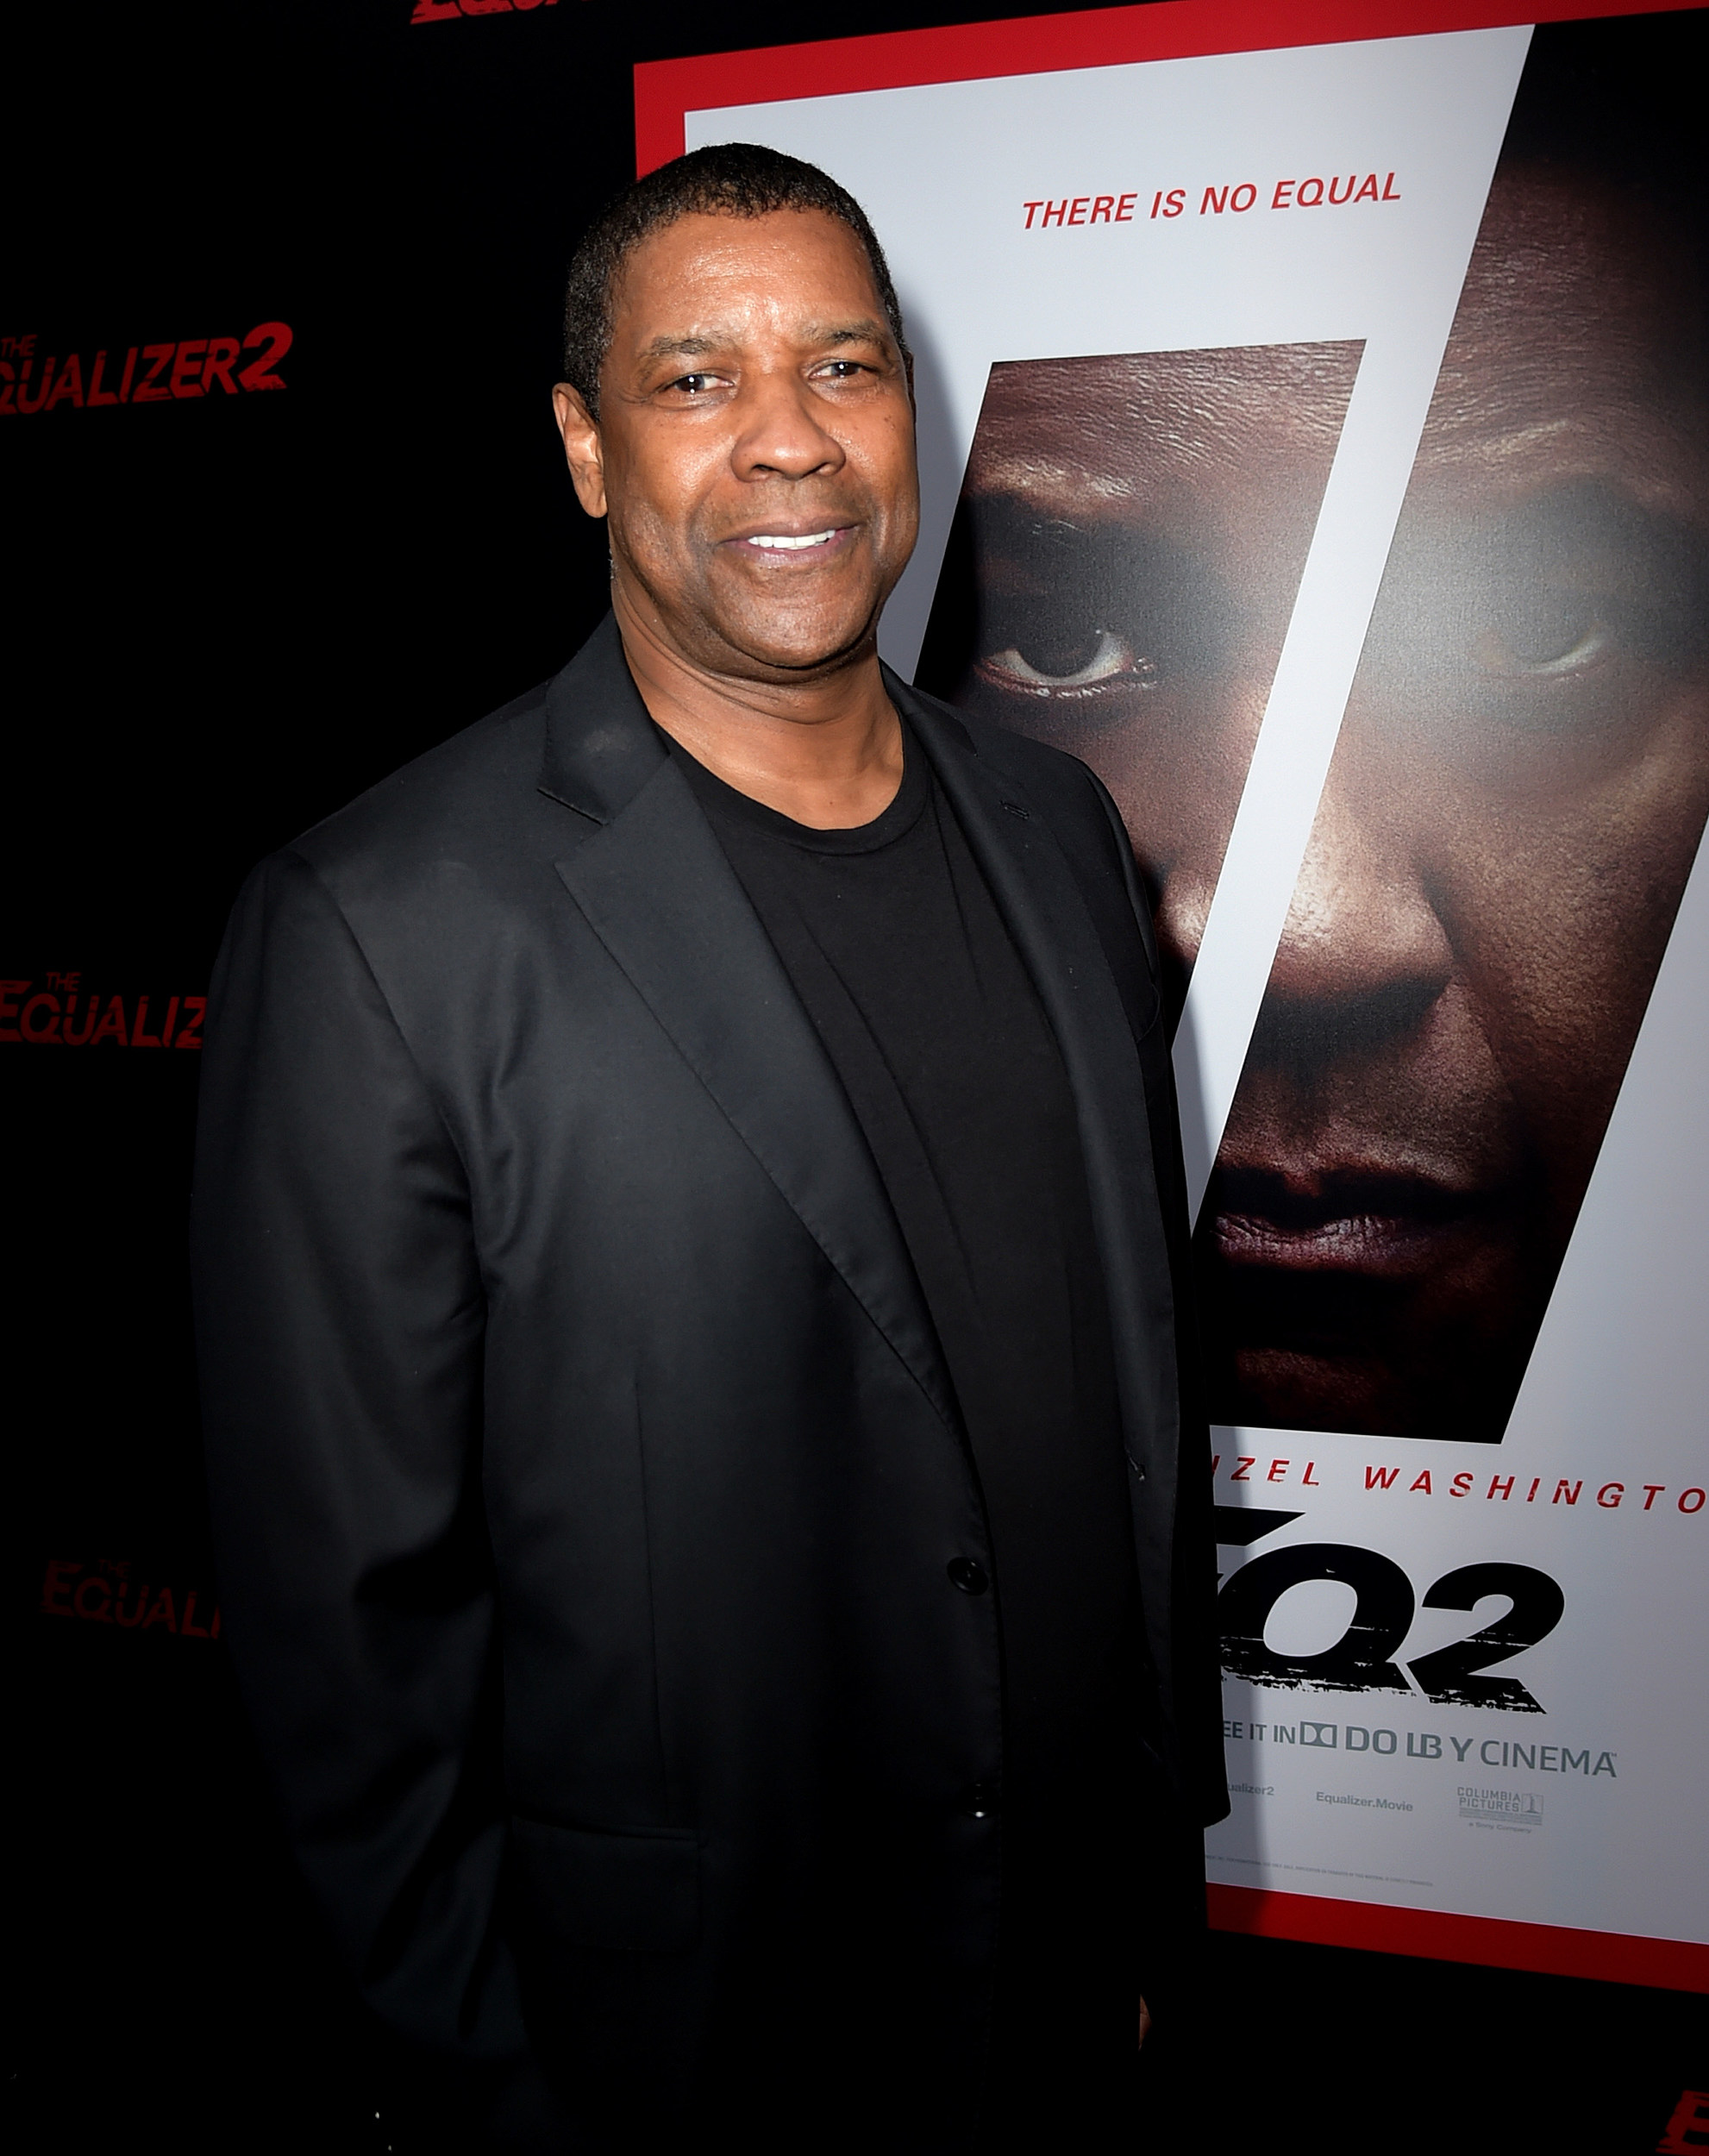 Is The Equalizer 2 Worth Seeing in Theaters?